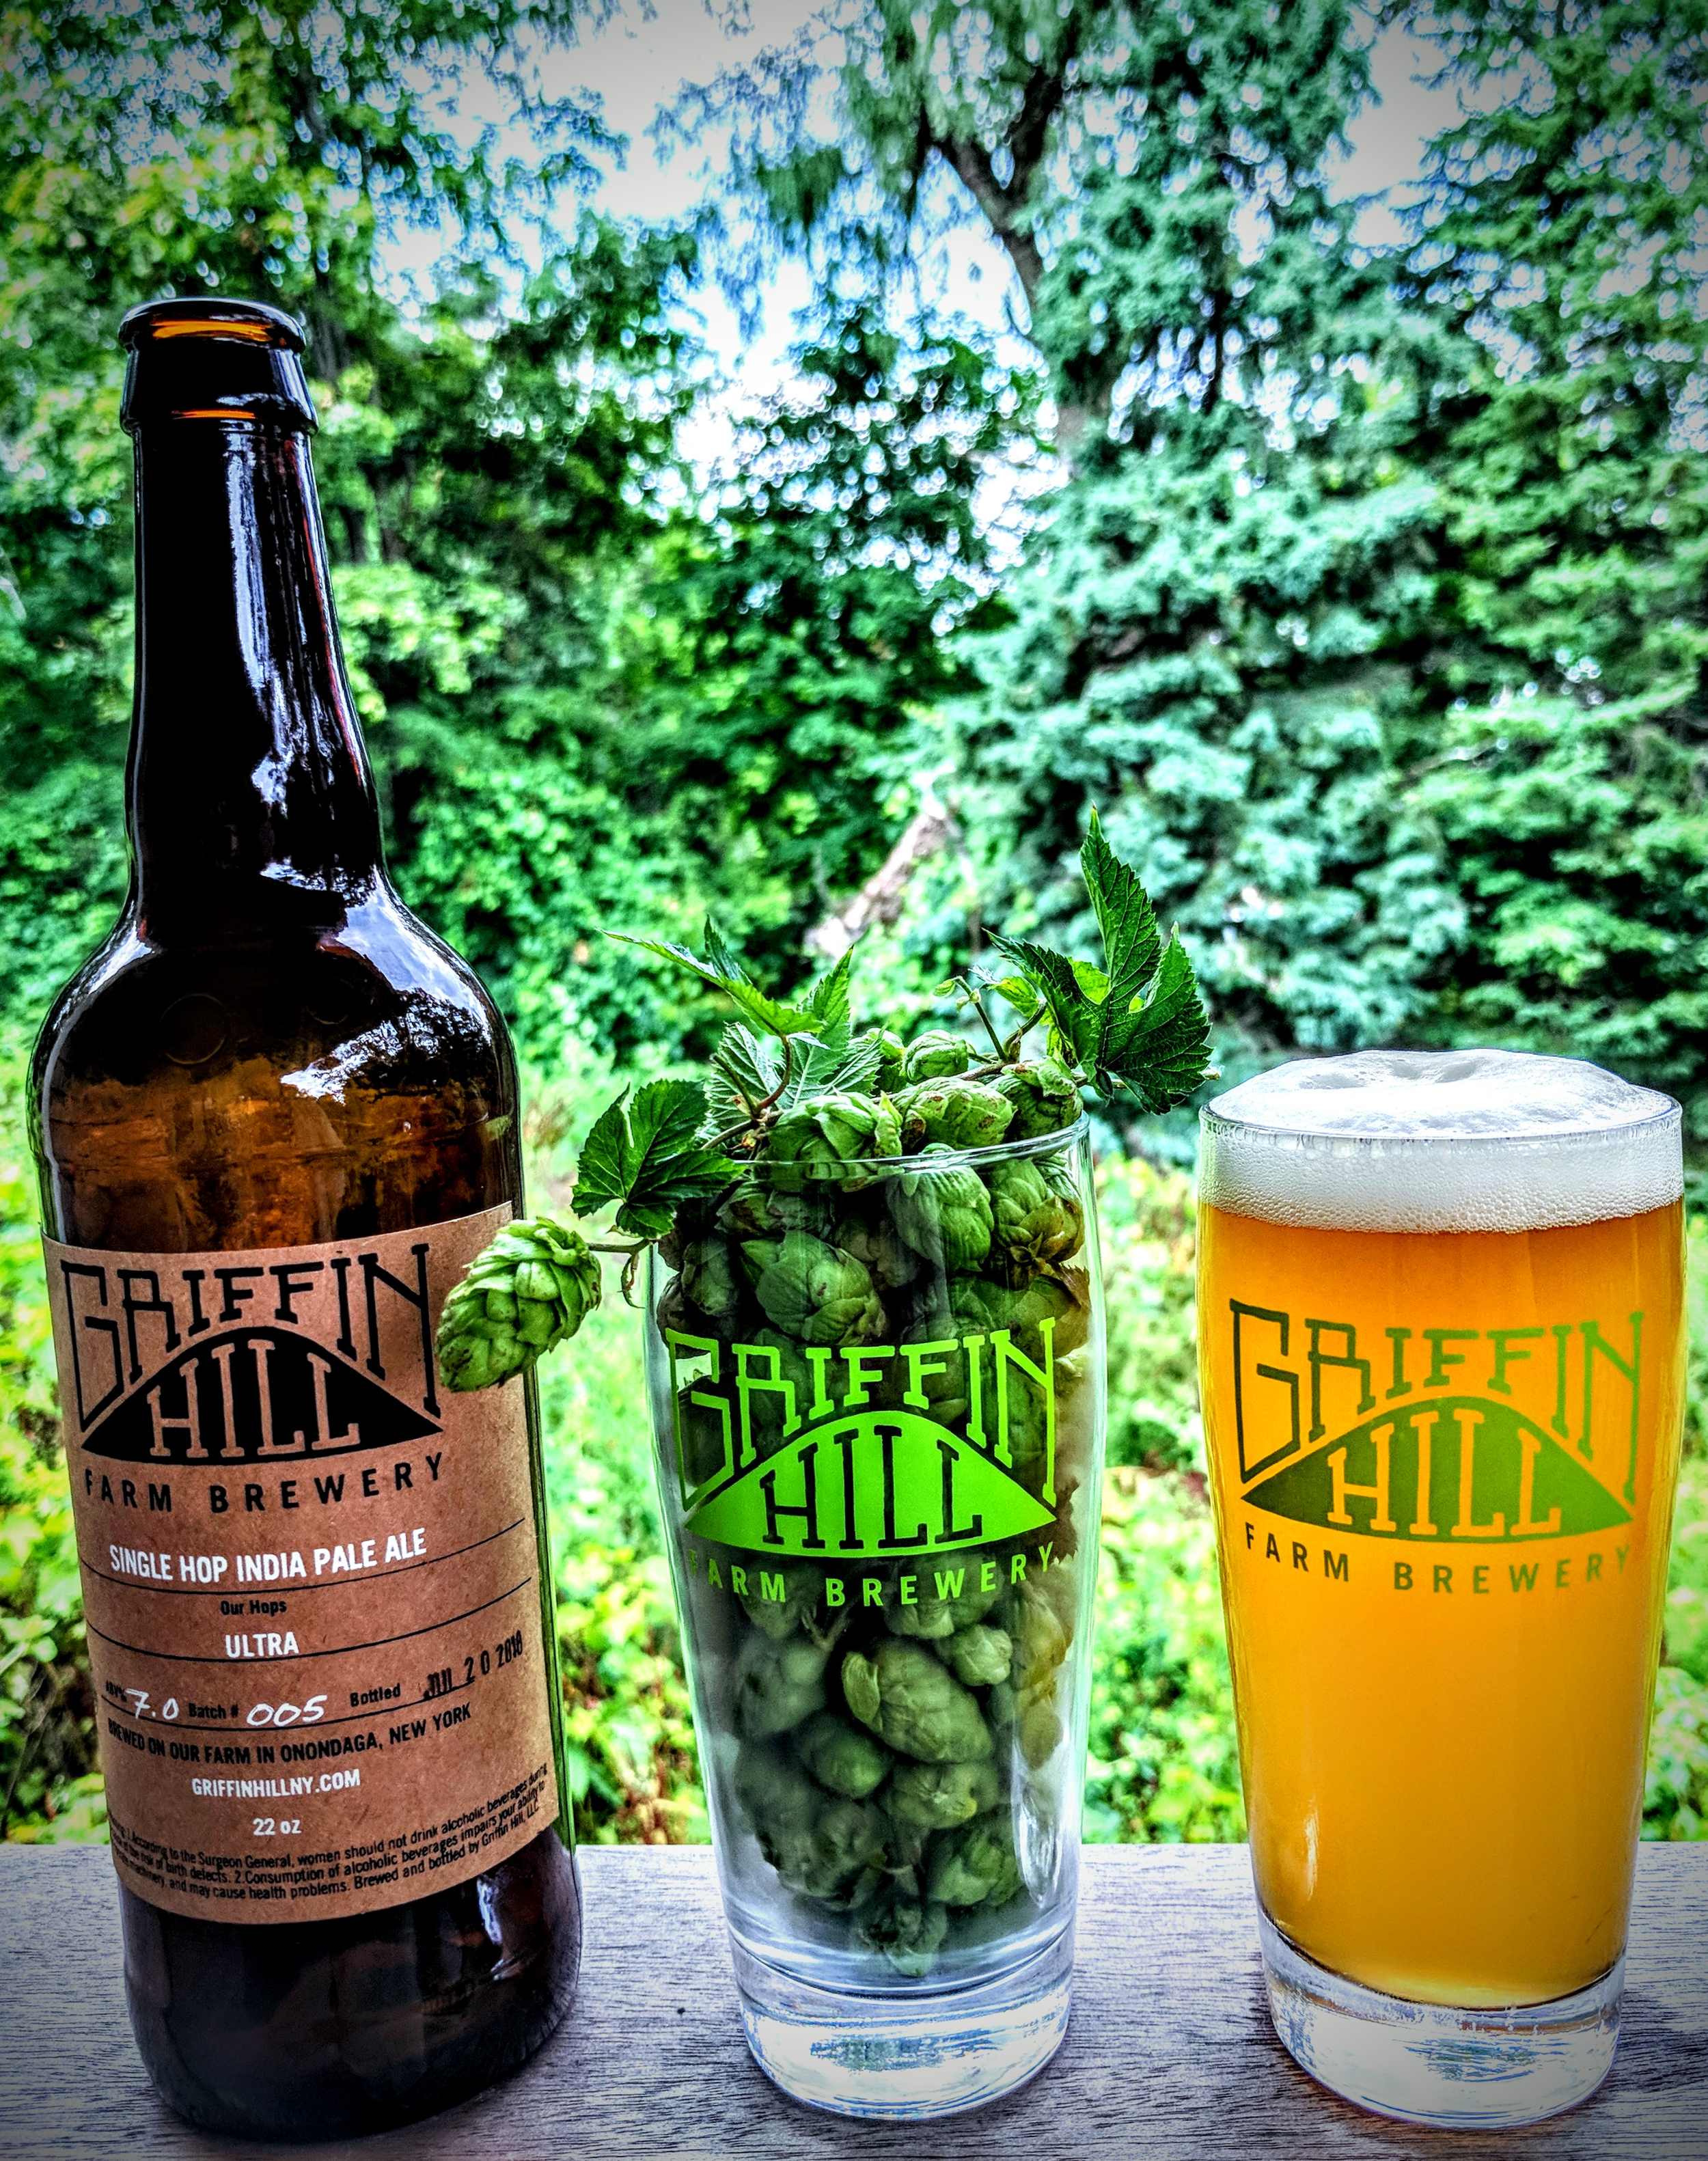 Our Beer  - Griffin Hill's line-up evolves with the seasons and our current inspirations. We always feature 100% Griffin Hill hops in our small-batch brews. From our farm... hops, honey, maple sap and syrup. From our partner farms and malt houses... grains and malt.For our current offerings in Shed C at the Regional Market each Saturday, check out our Friday posts on Facebook. Recurring beers include New York Gold, Small Farmhouse, and Foreign Extra Stout. We love highlighting our hop varieties in our experimental Single Hop IPA series.